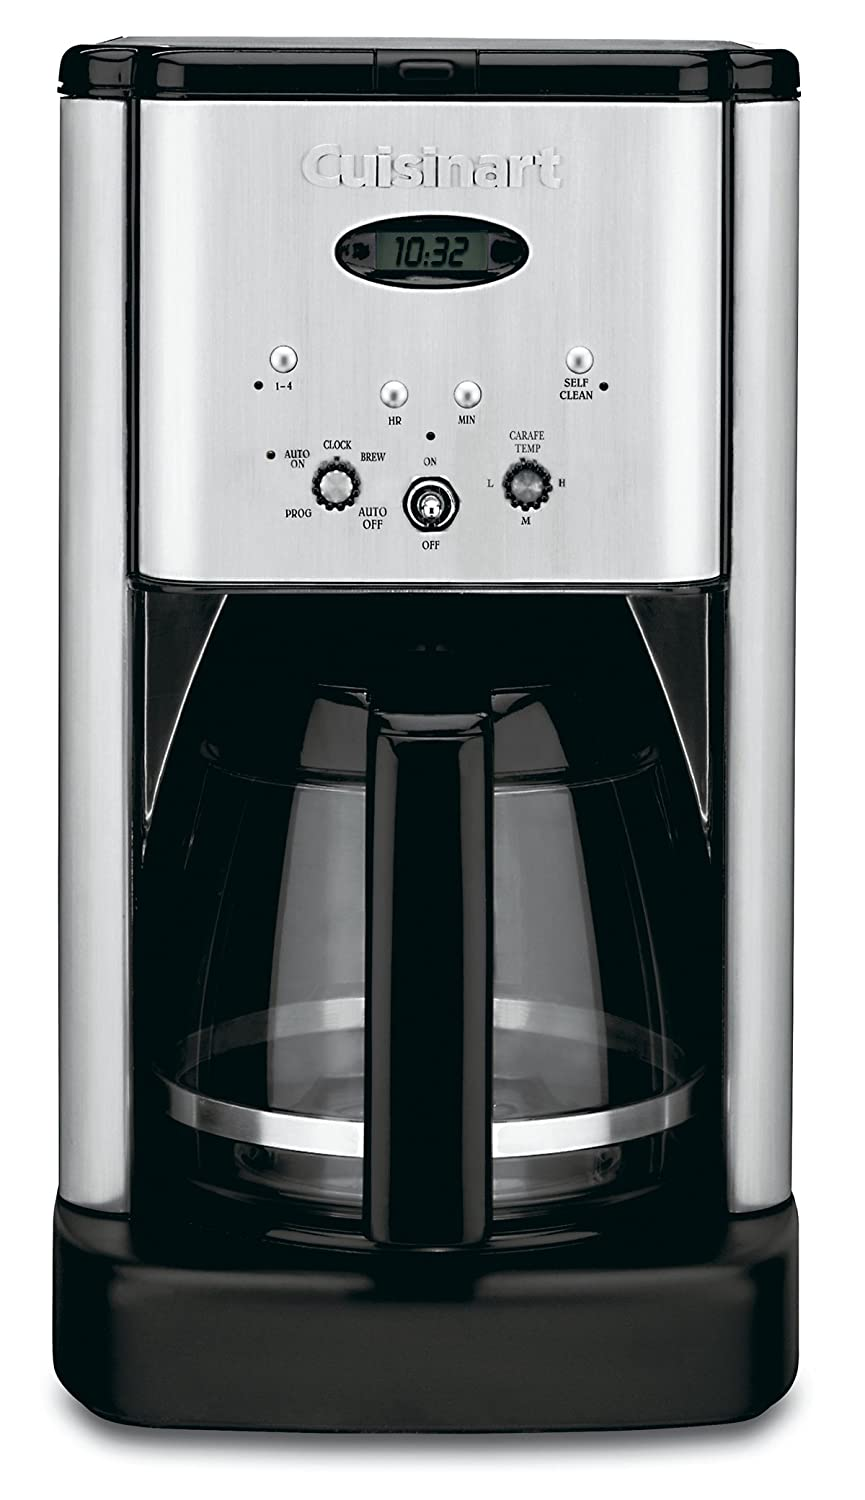 Cuisinart DCC-1200 Brew Central 12 Cup Programmable Coffeemaker, Black/Silver